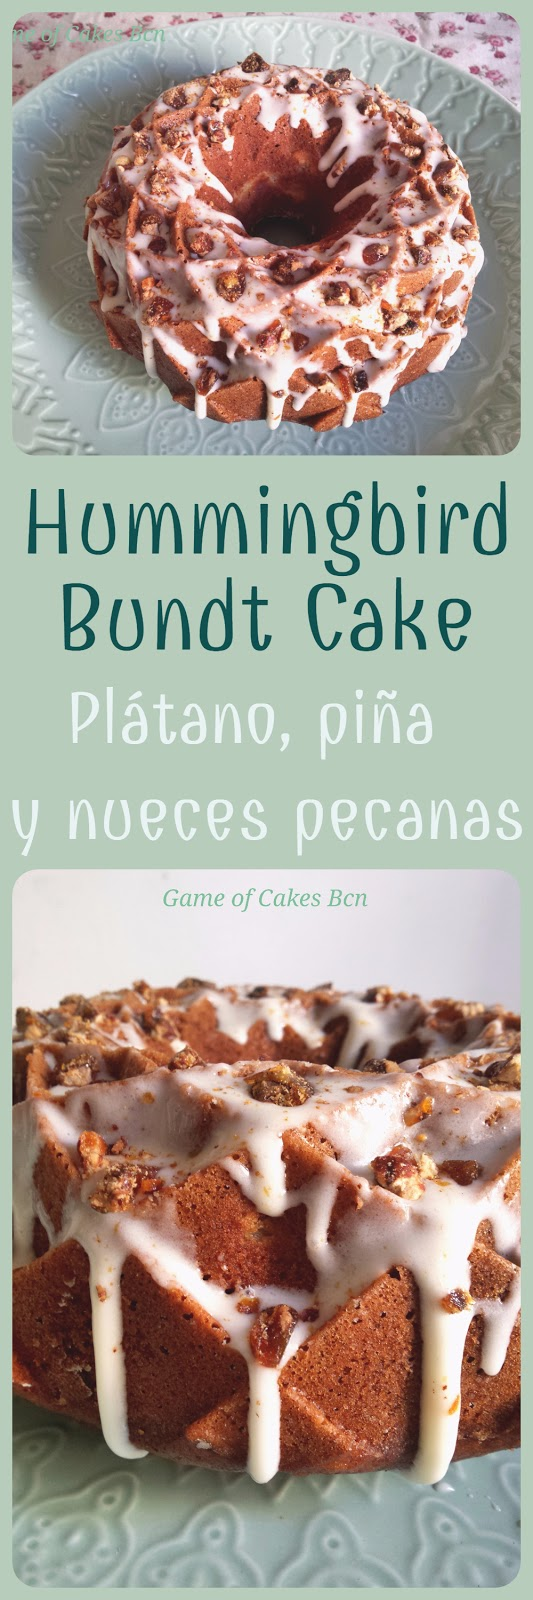 Hummingbird bundt cake, pastel colibrí, Game of Cakes Bcn